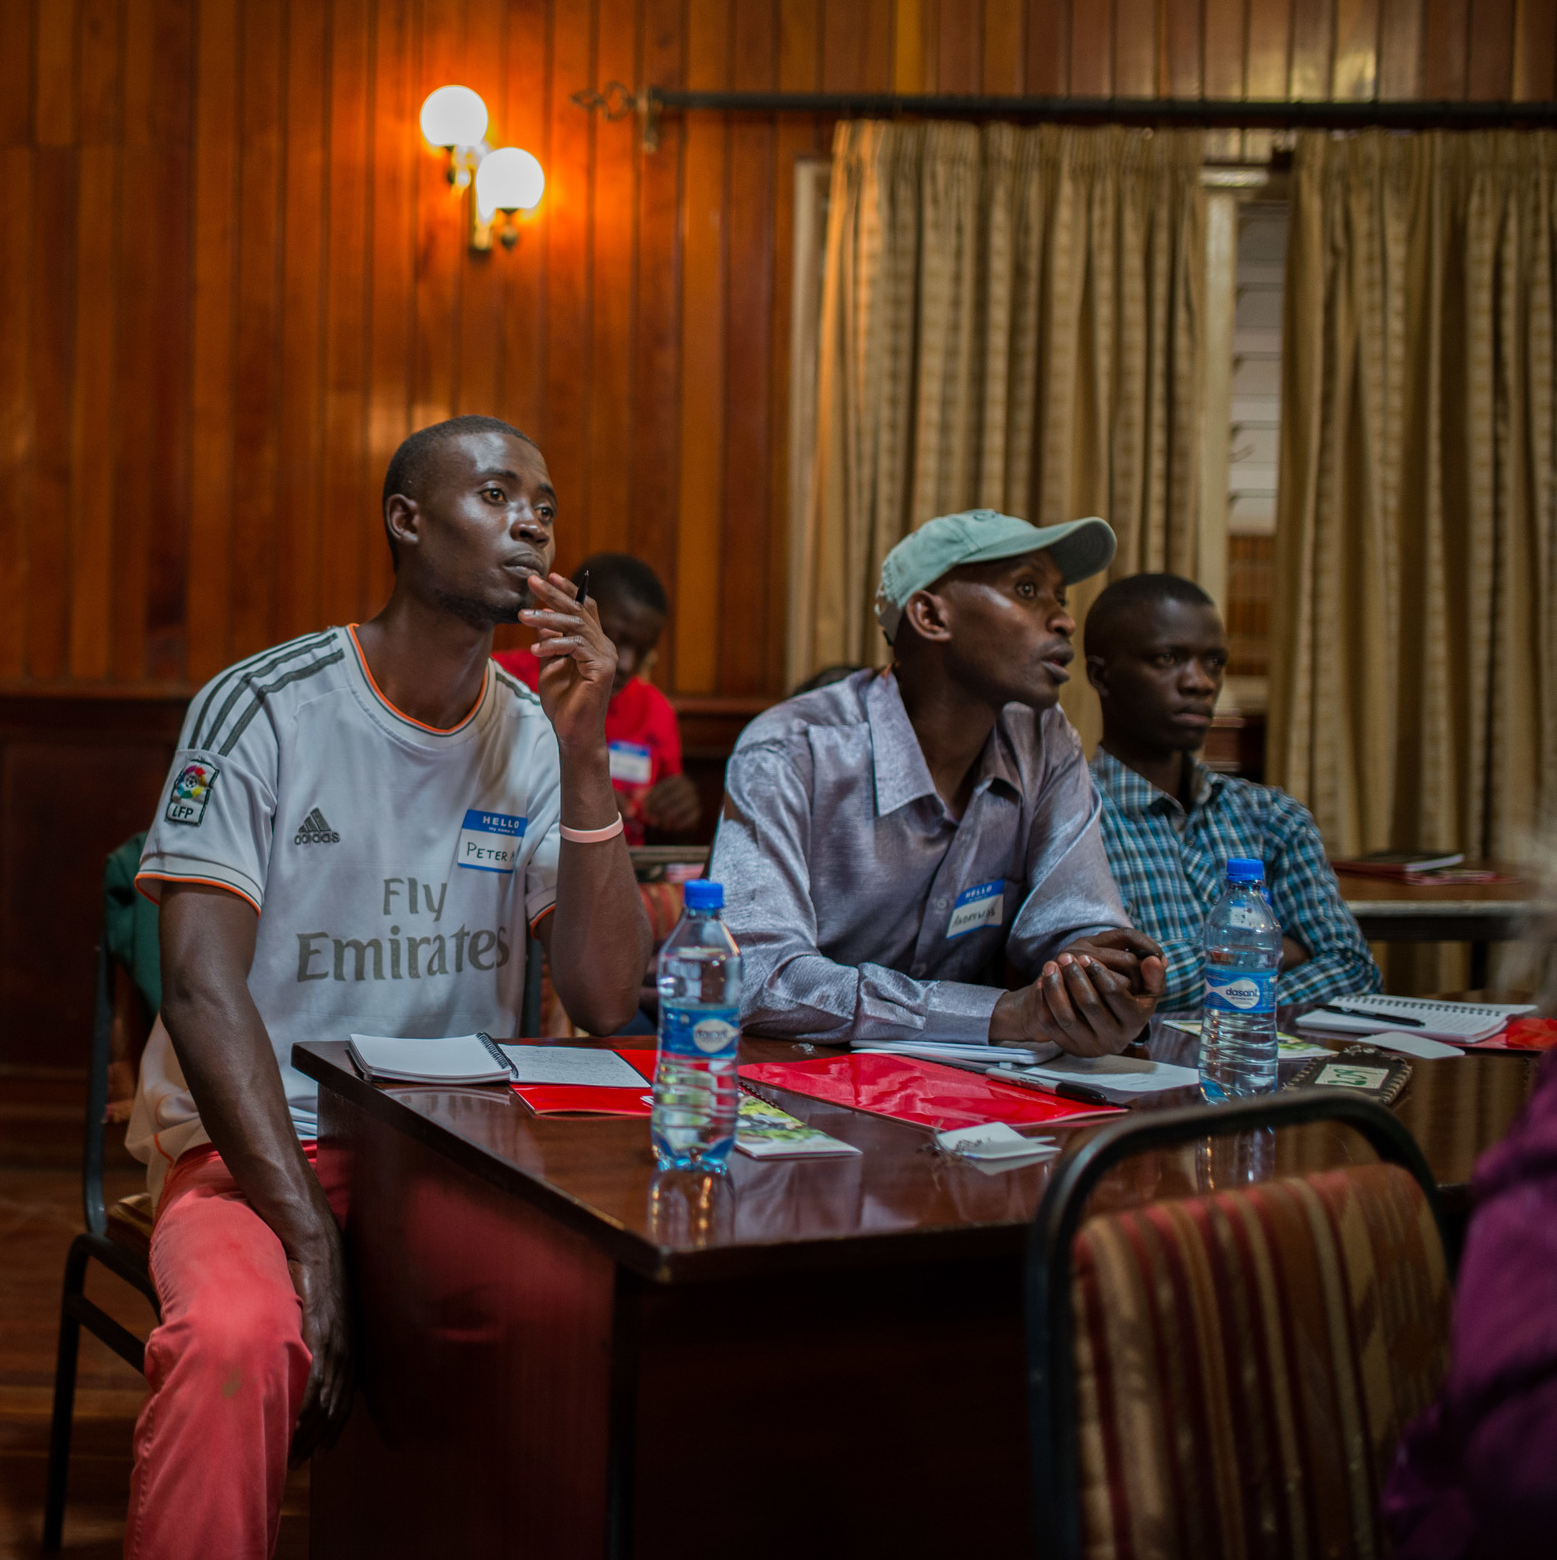 The G.O.D. EA Summit gathered students and leaders from throughout East Africa. Ugandan students attend the Institute for G.O.D. East Africa. Kenyan students are participants in a youth bible study led by Reuben Ndwiga and Simon Njeru.